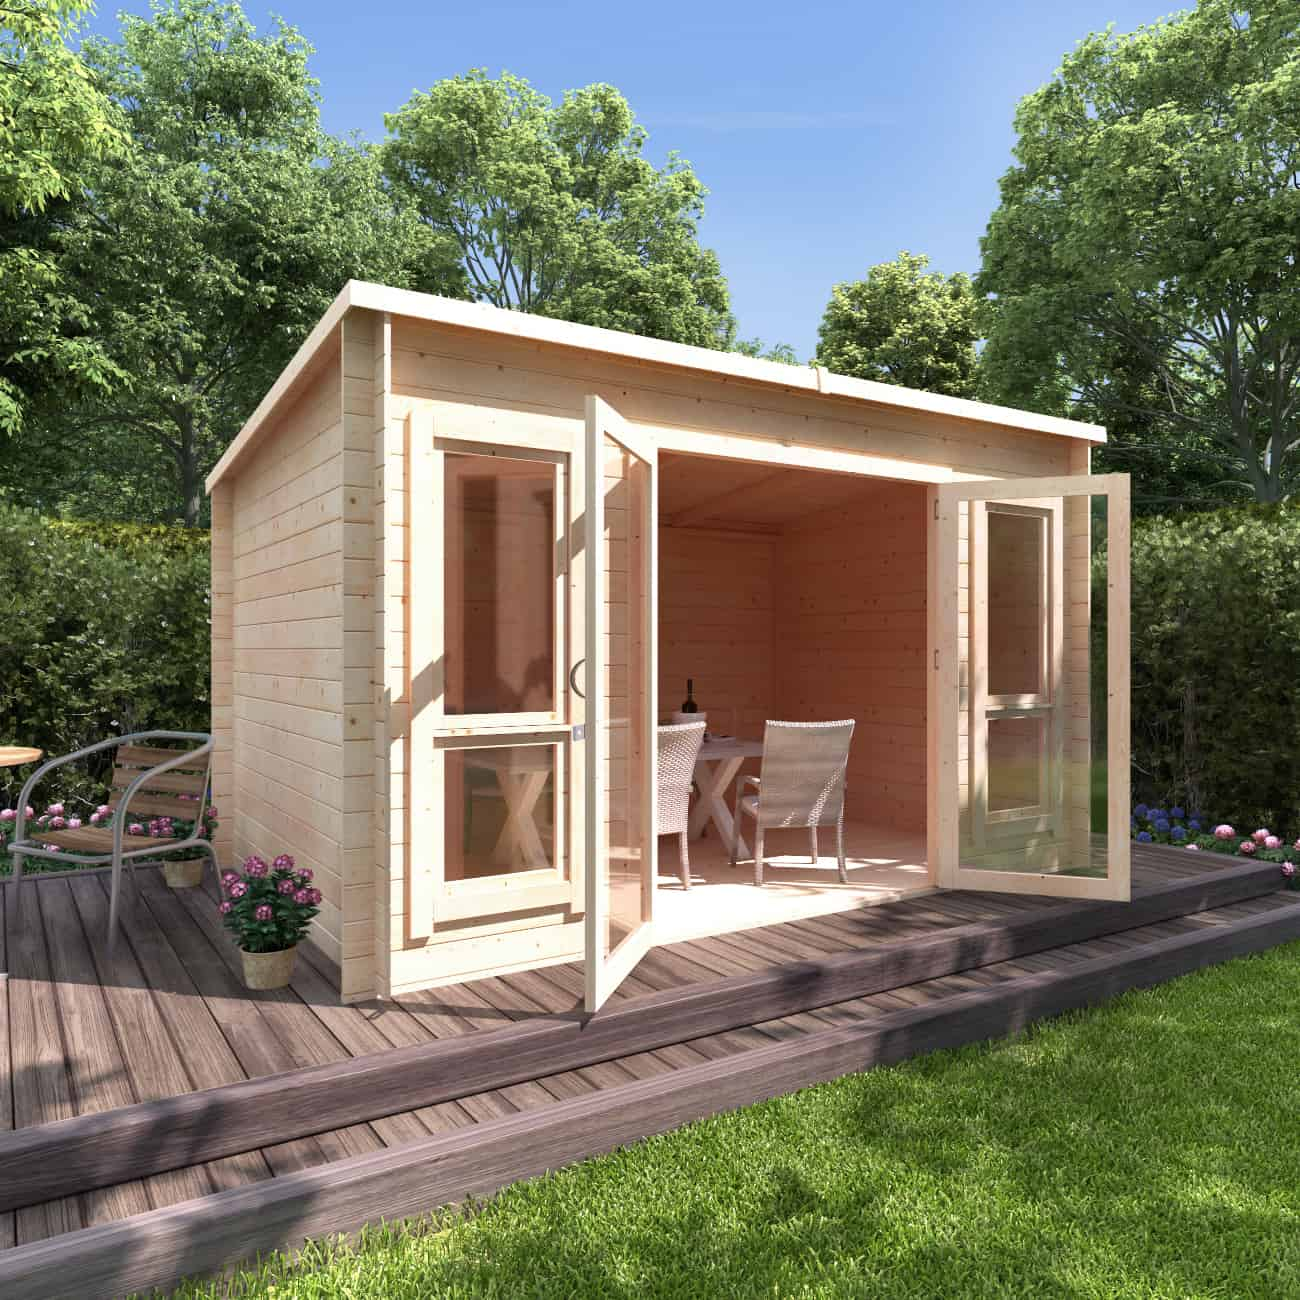 BillyOh Carmen Pent roof wooden log cabin on a raised patio in a garden